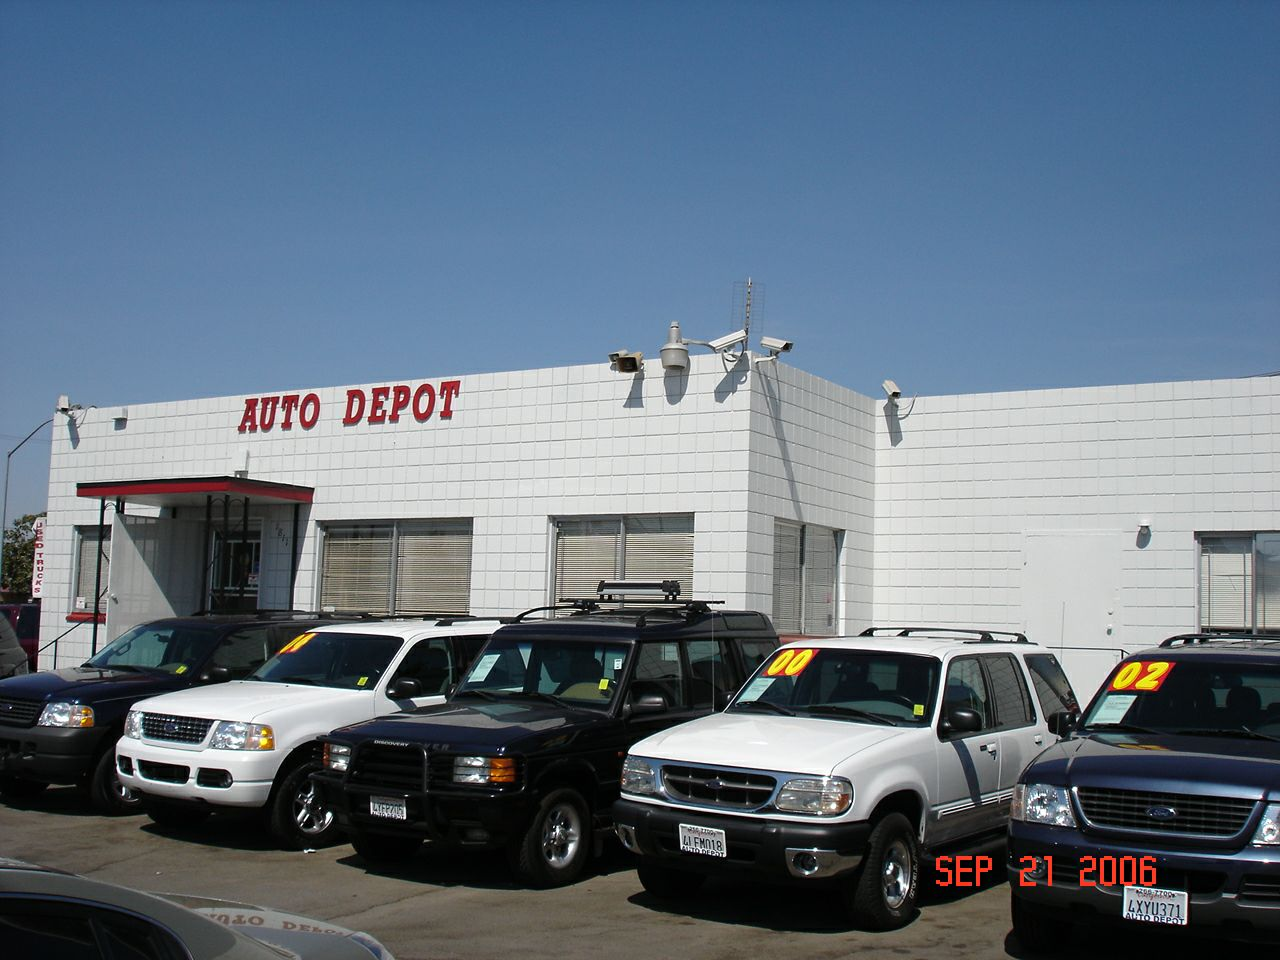 Car dealership Remodeling